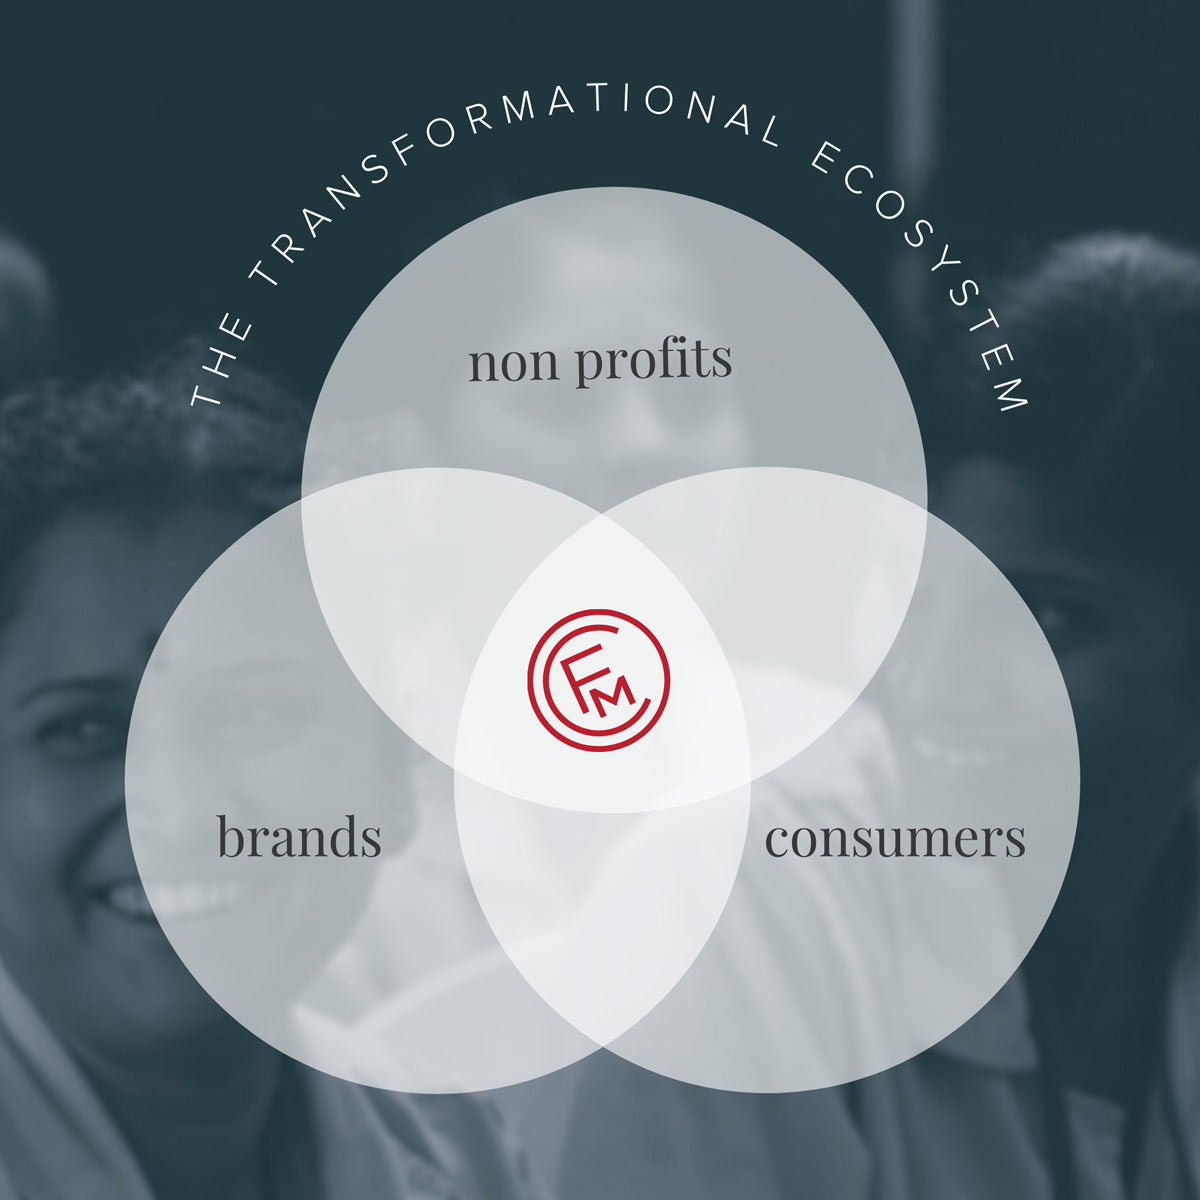 The transformational ecosystem.